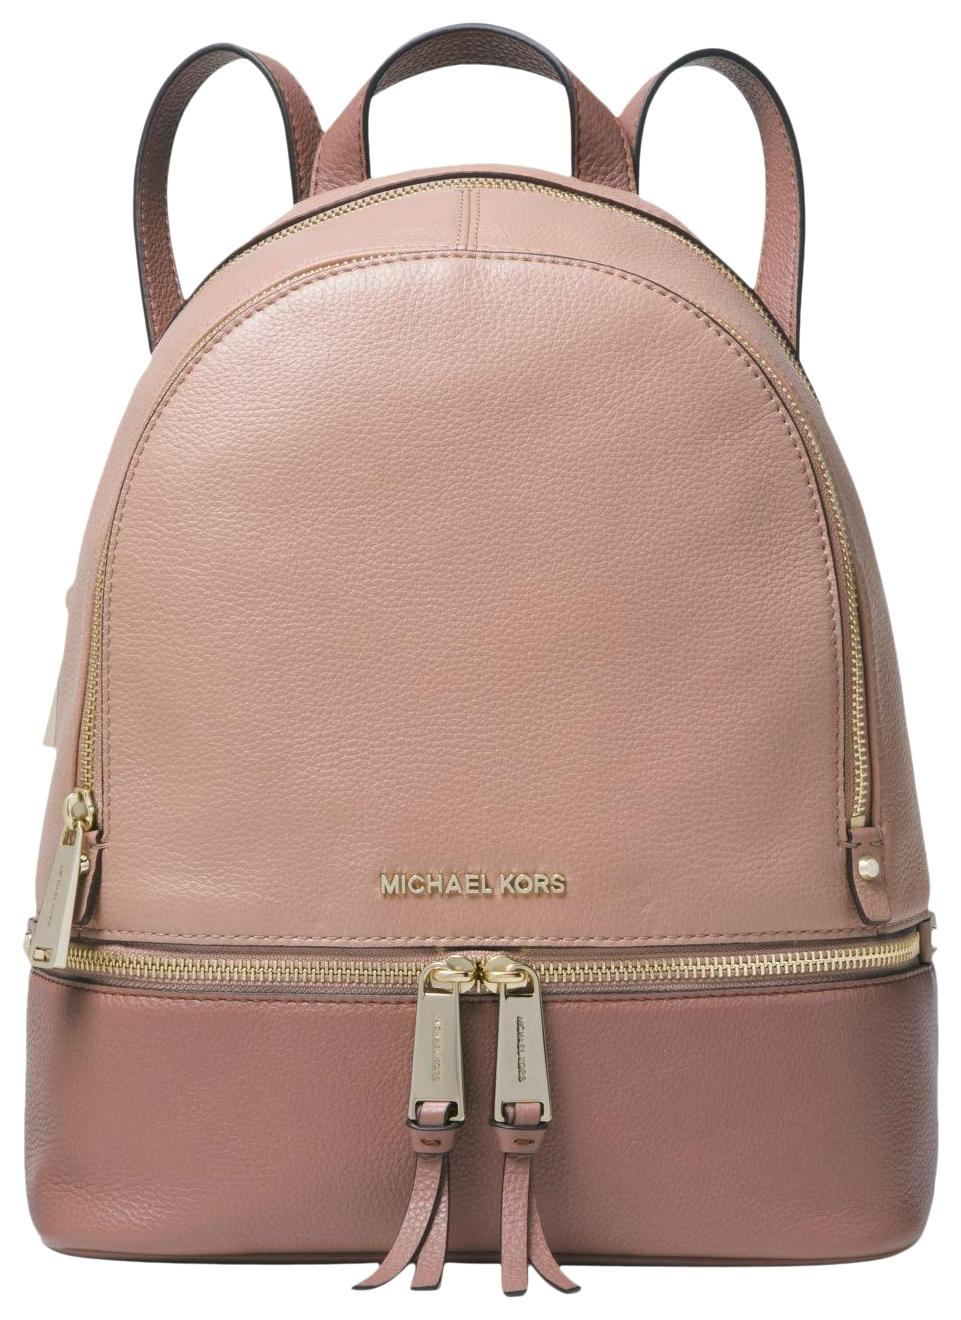 085f650e7783 12345678910 f9100 3407a where can i buy michael kors leather 30f8tezb2t  backpack c987d 6d31a new zealand michael michael kors womens small rhea ...